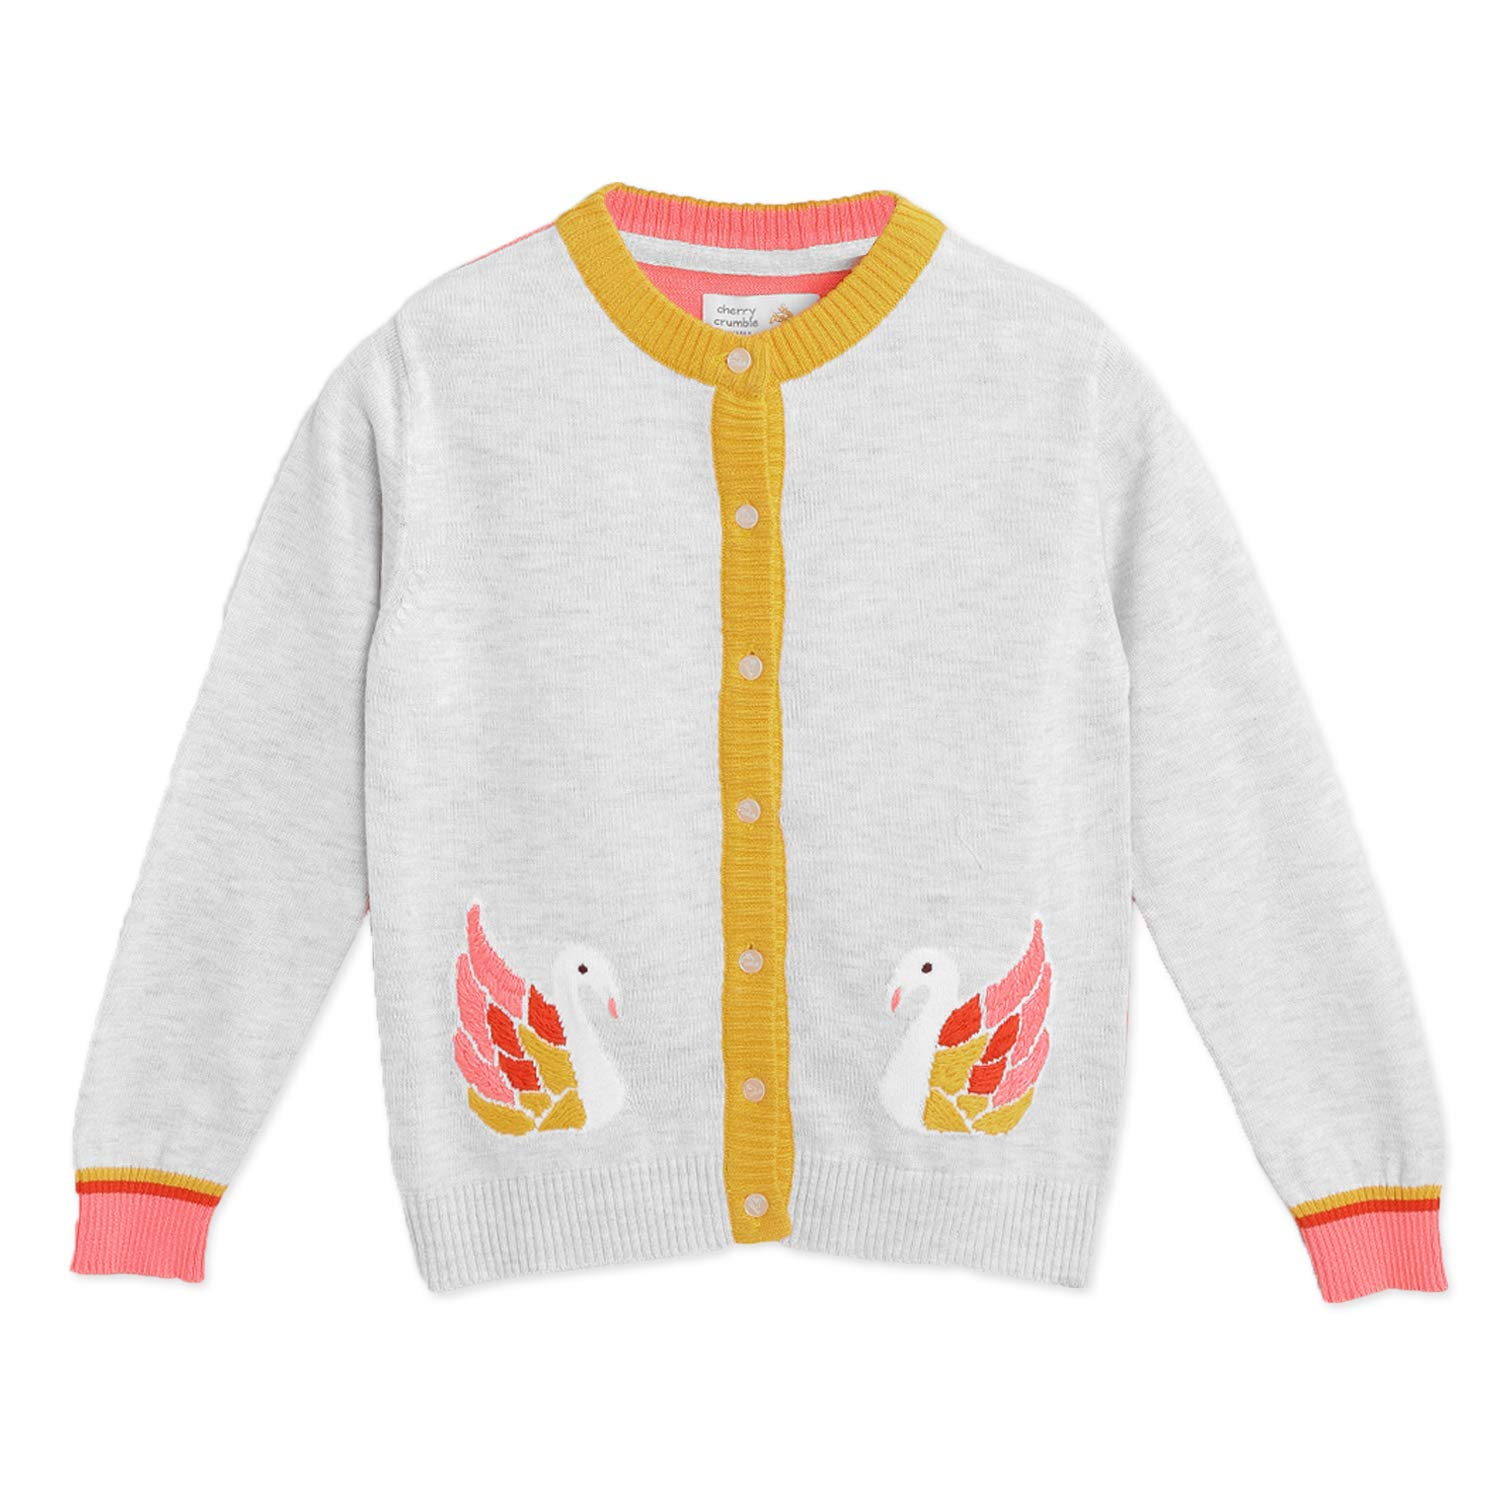 Grey with Applique Cherry Crumble California Kids Girls Pure Cotton Regular Length Top